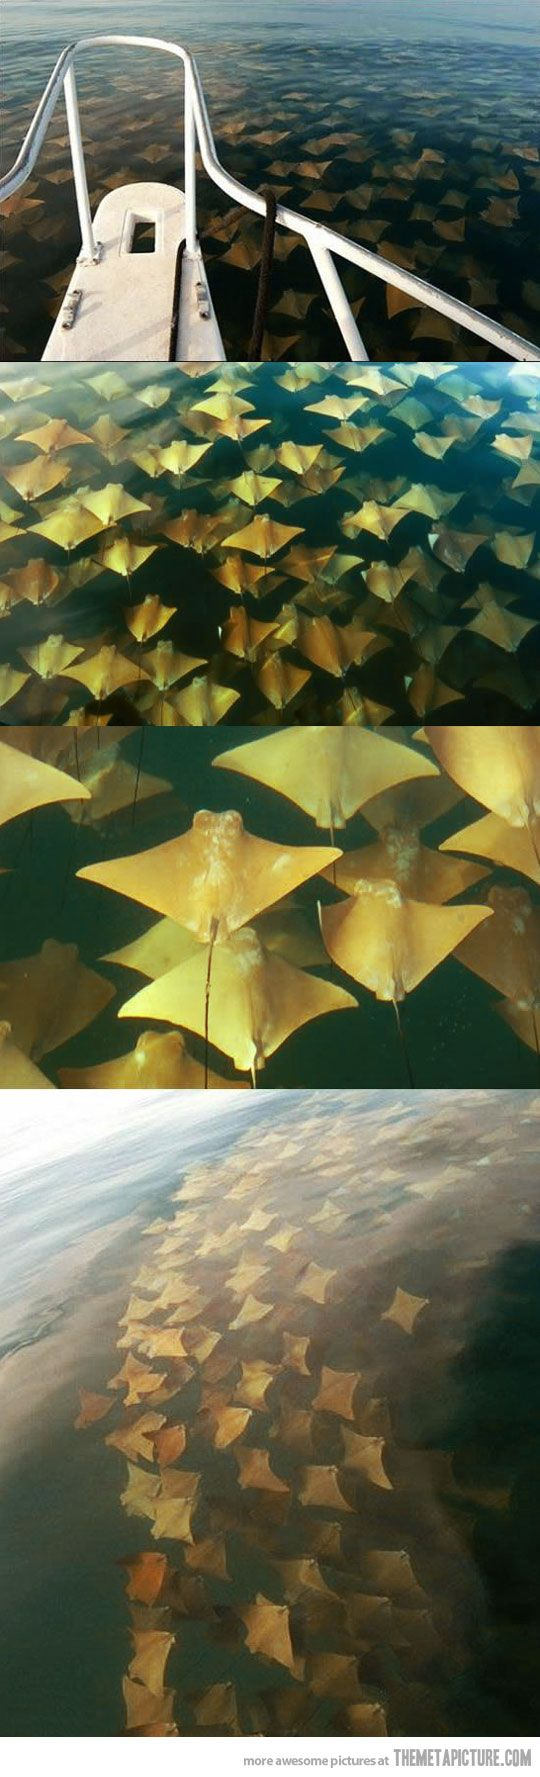 The mass migration of the Cownose Ray in the Gulf of Mexico